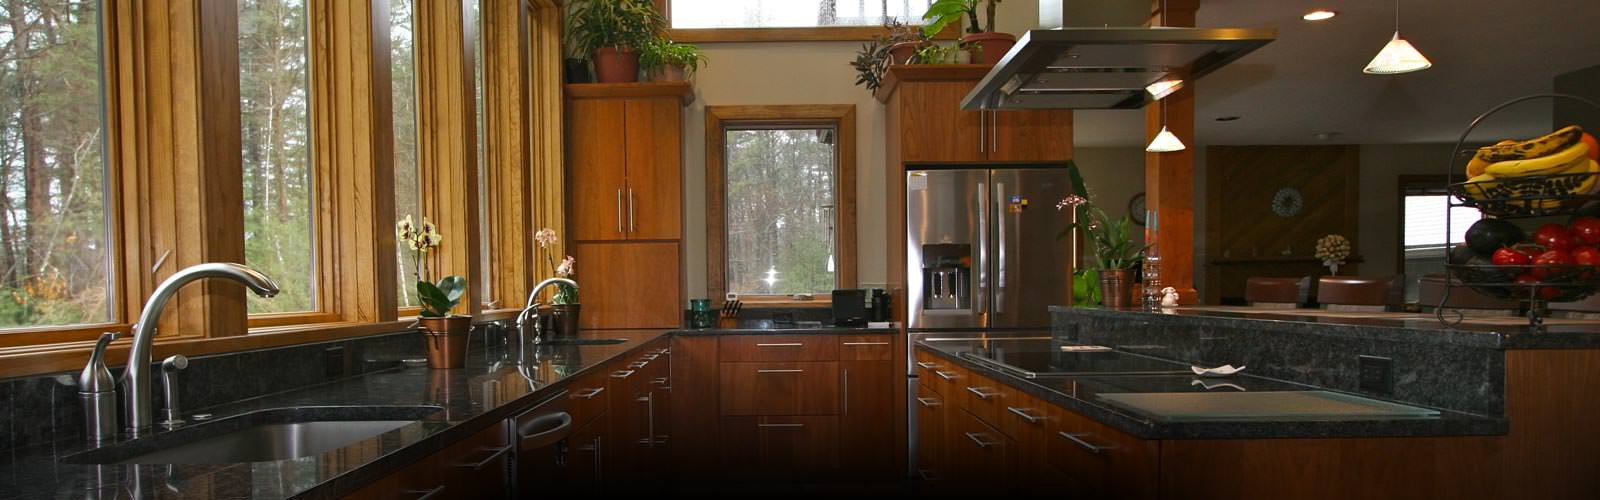 alc design | kitchen bath and home remodeling in nh ma